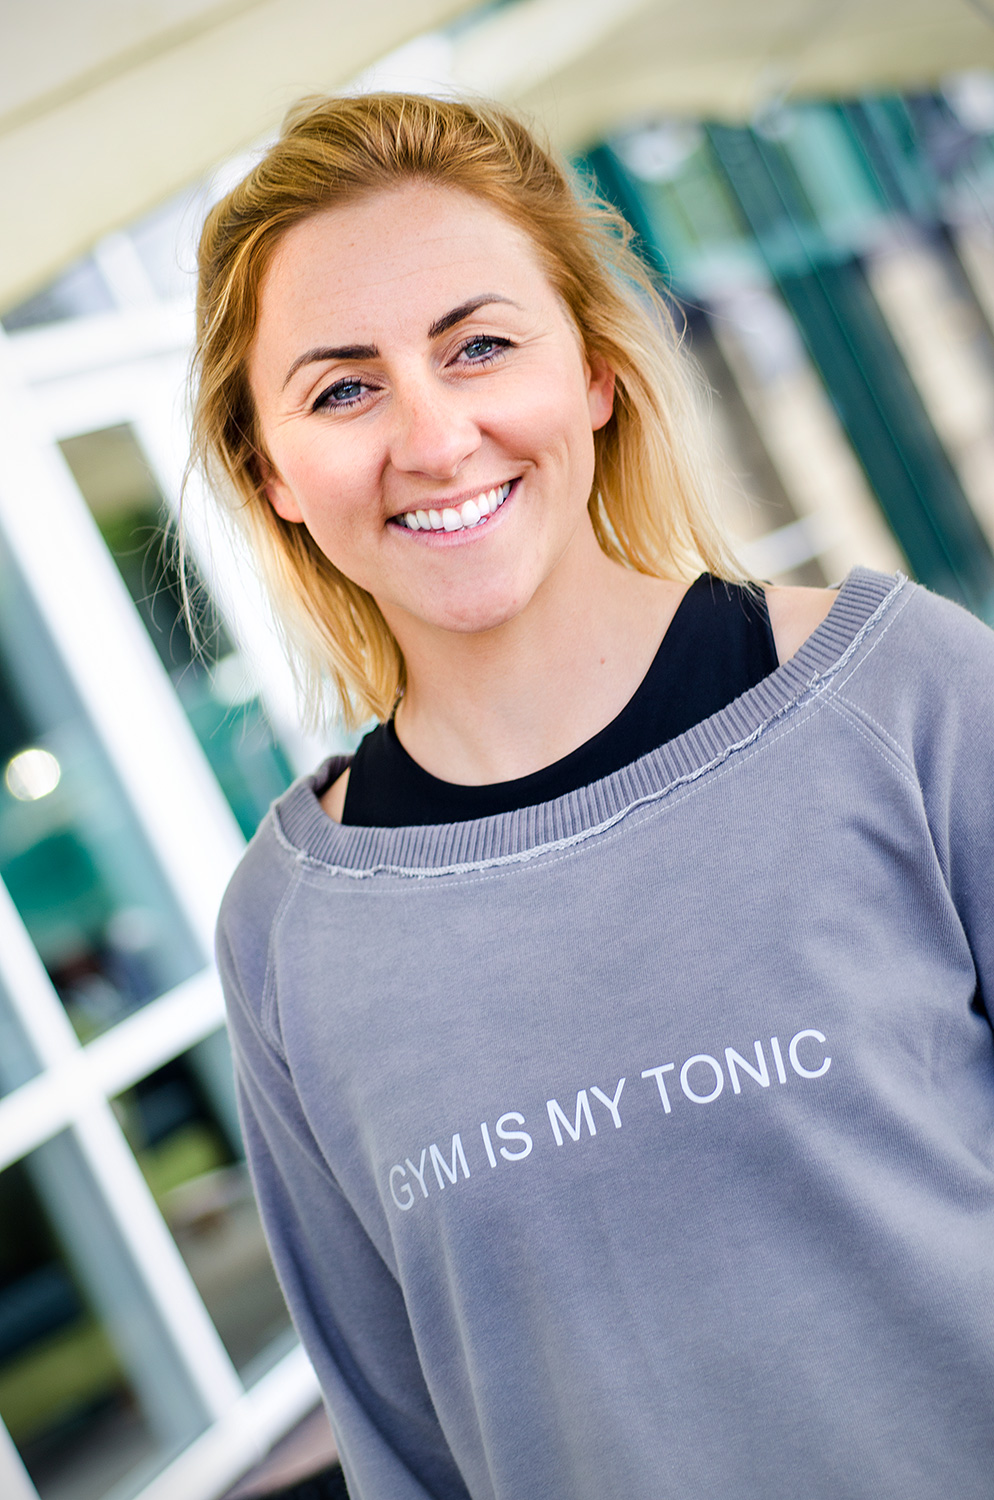 'GYM IS MY TONIC' Sweatshirt: Extra Large